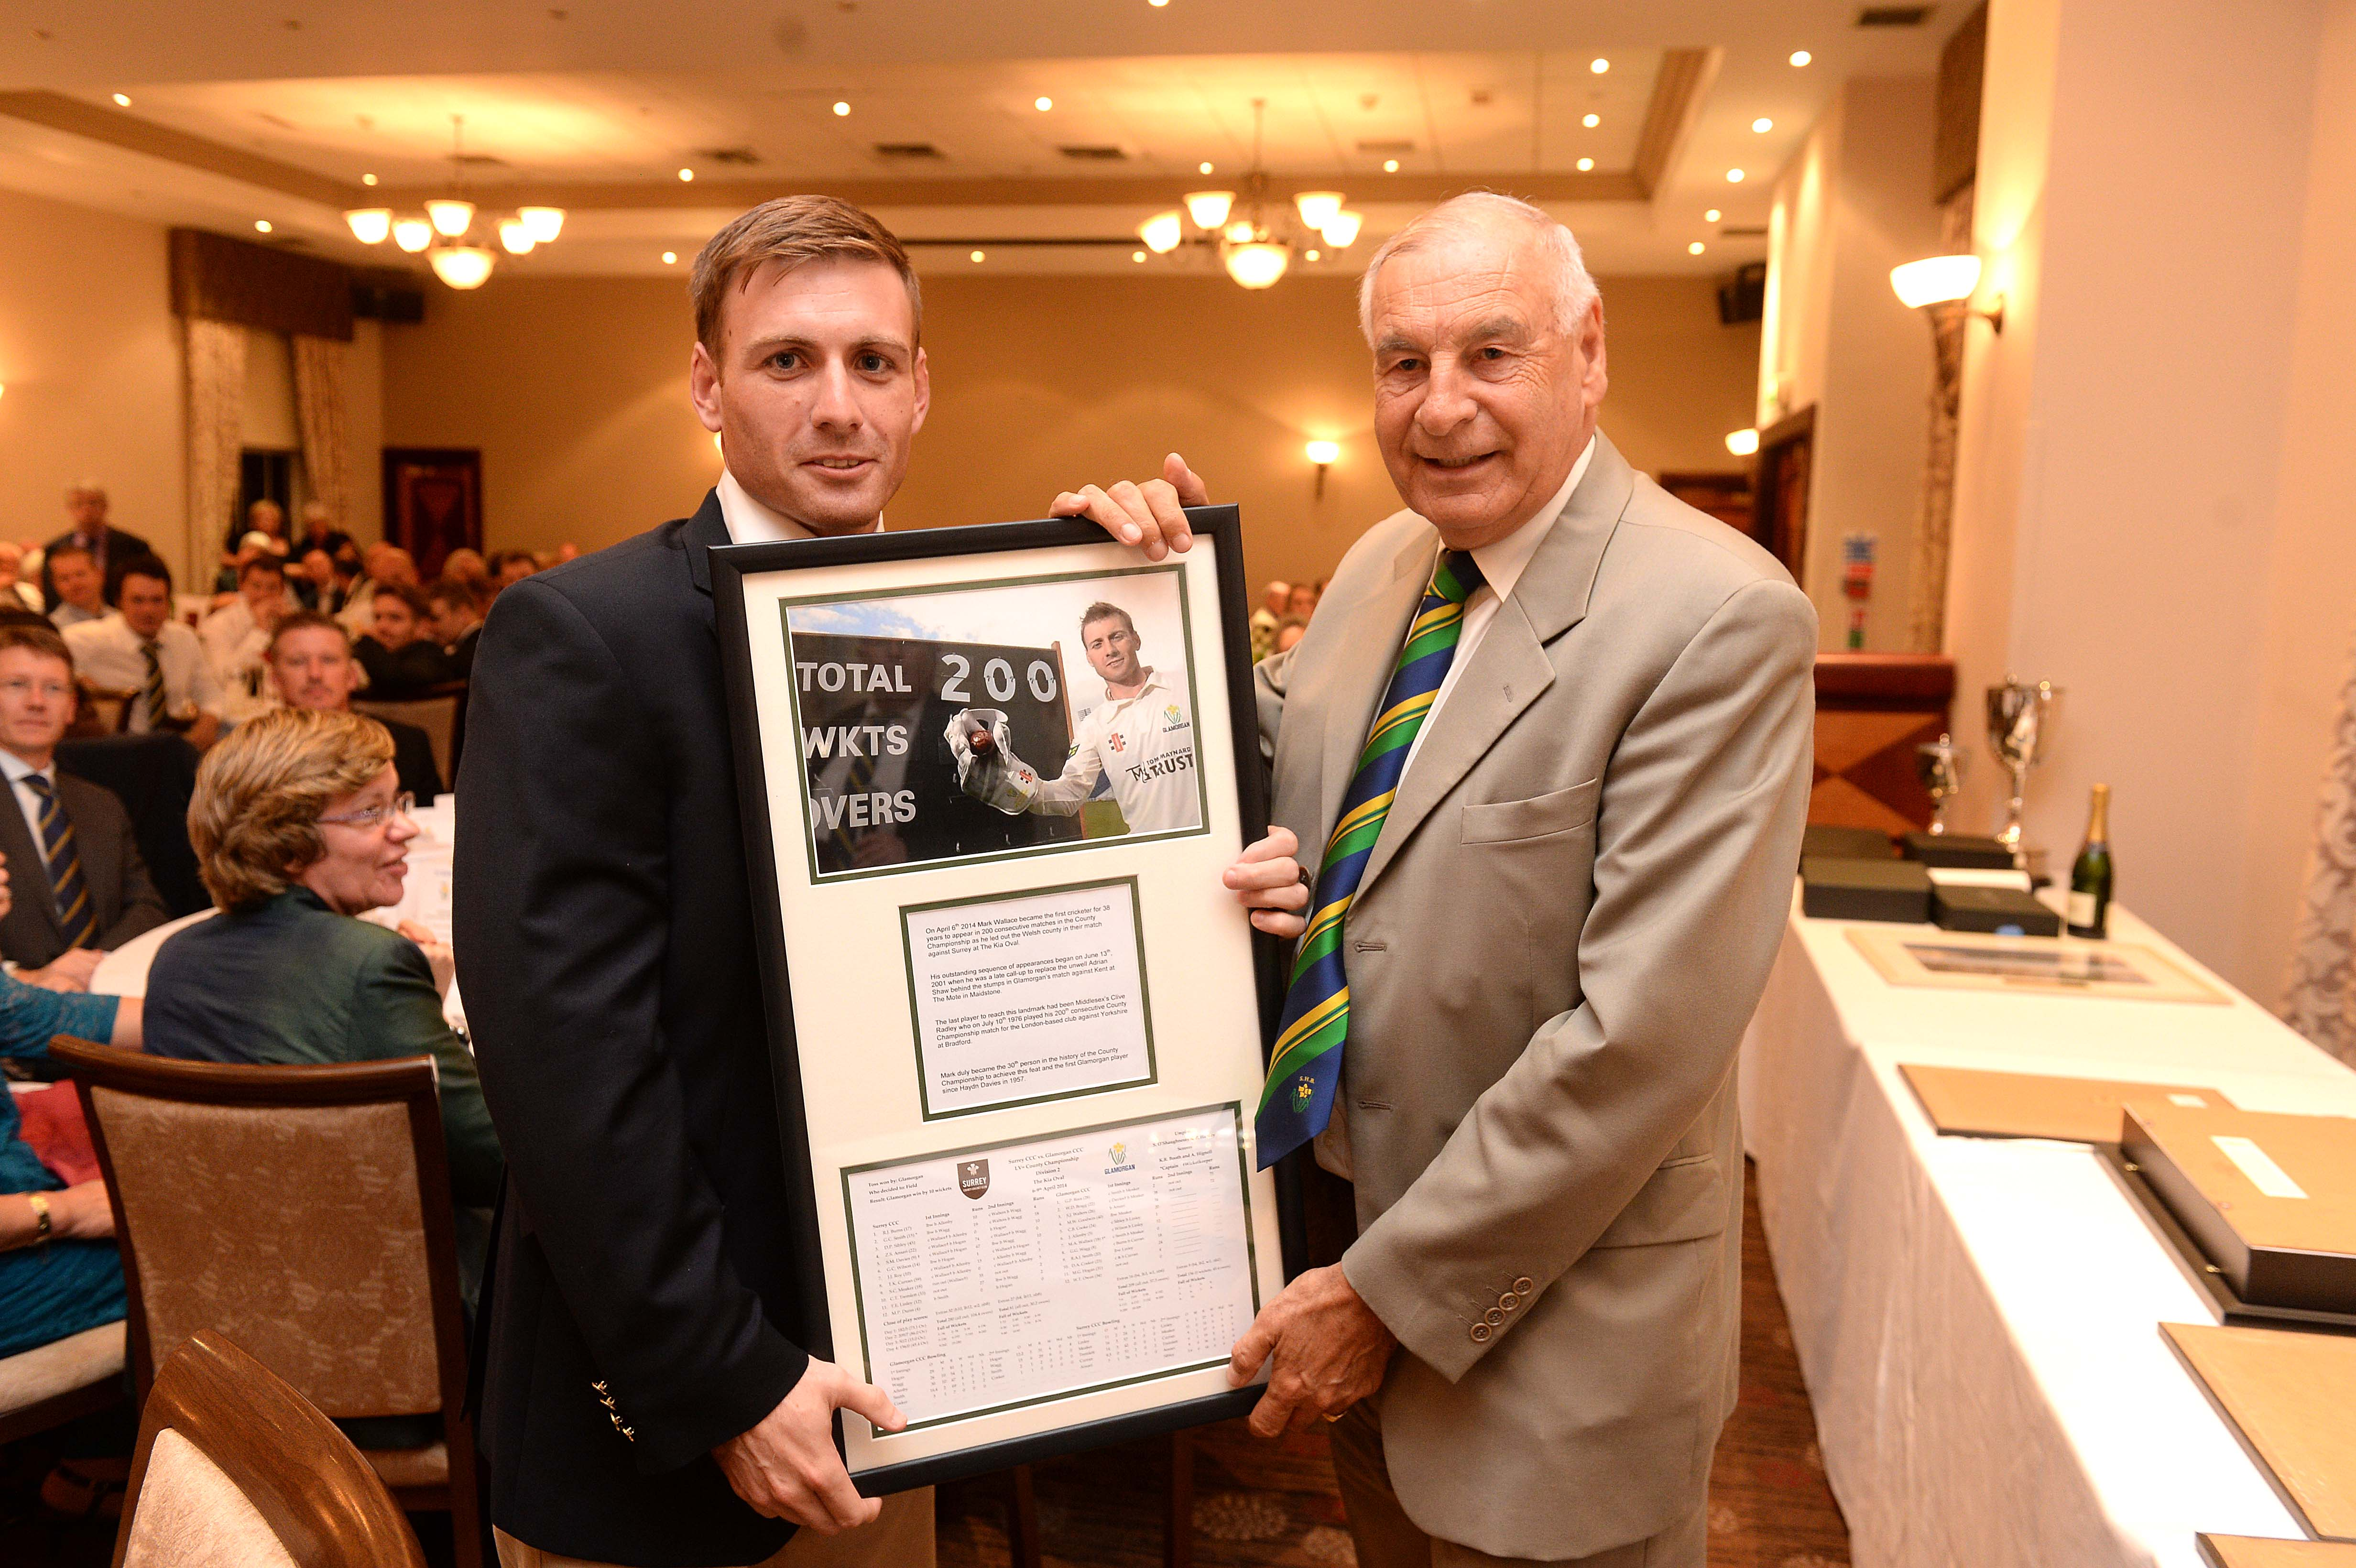 Wicketkeeper Mark Wallace receives a Special Award from Balconiers' Treasurer Clive Hemp to mark 200 consecutive County Championship appearances fro Glamorgan.